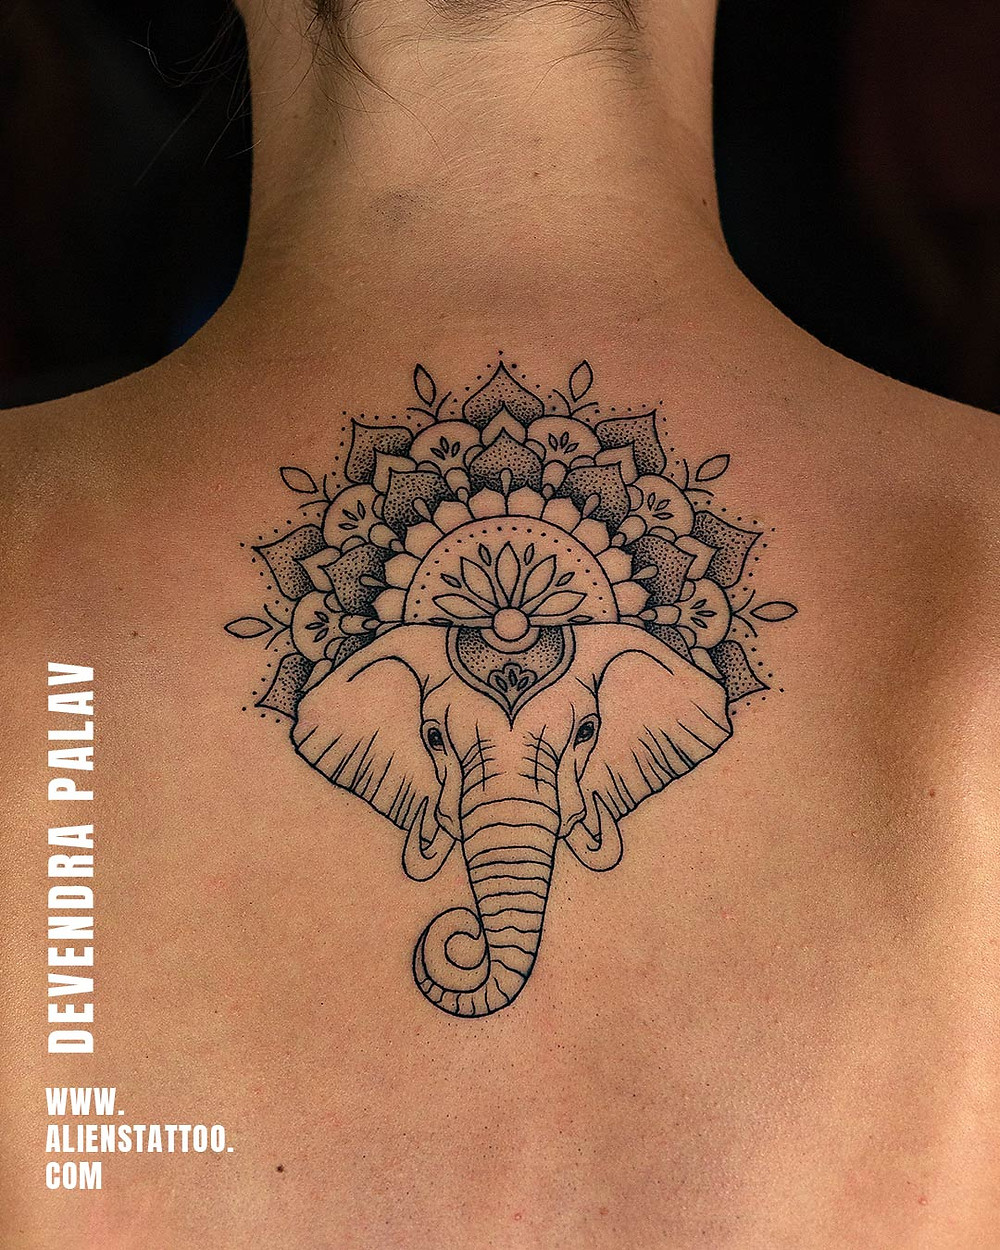 Elephant Tattoo - Animal Tatoo - Aliens Tattoo